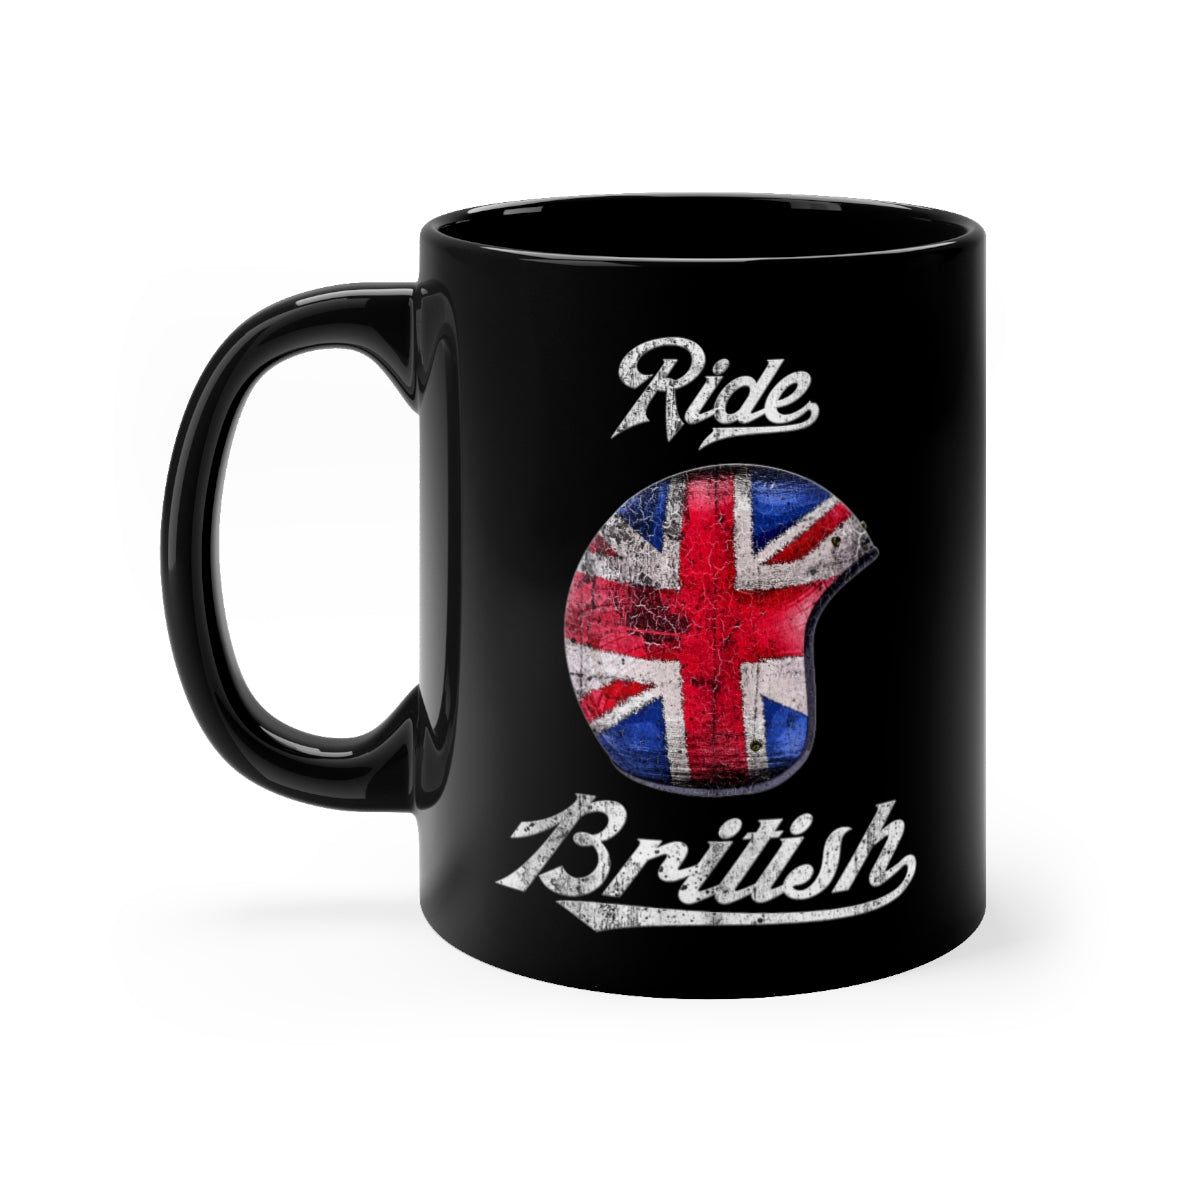 Ride British -Helmet Design - Black mug 11oz